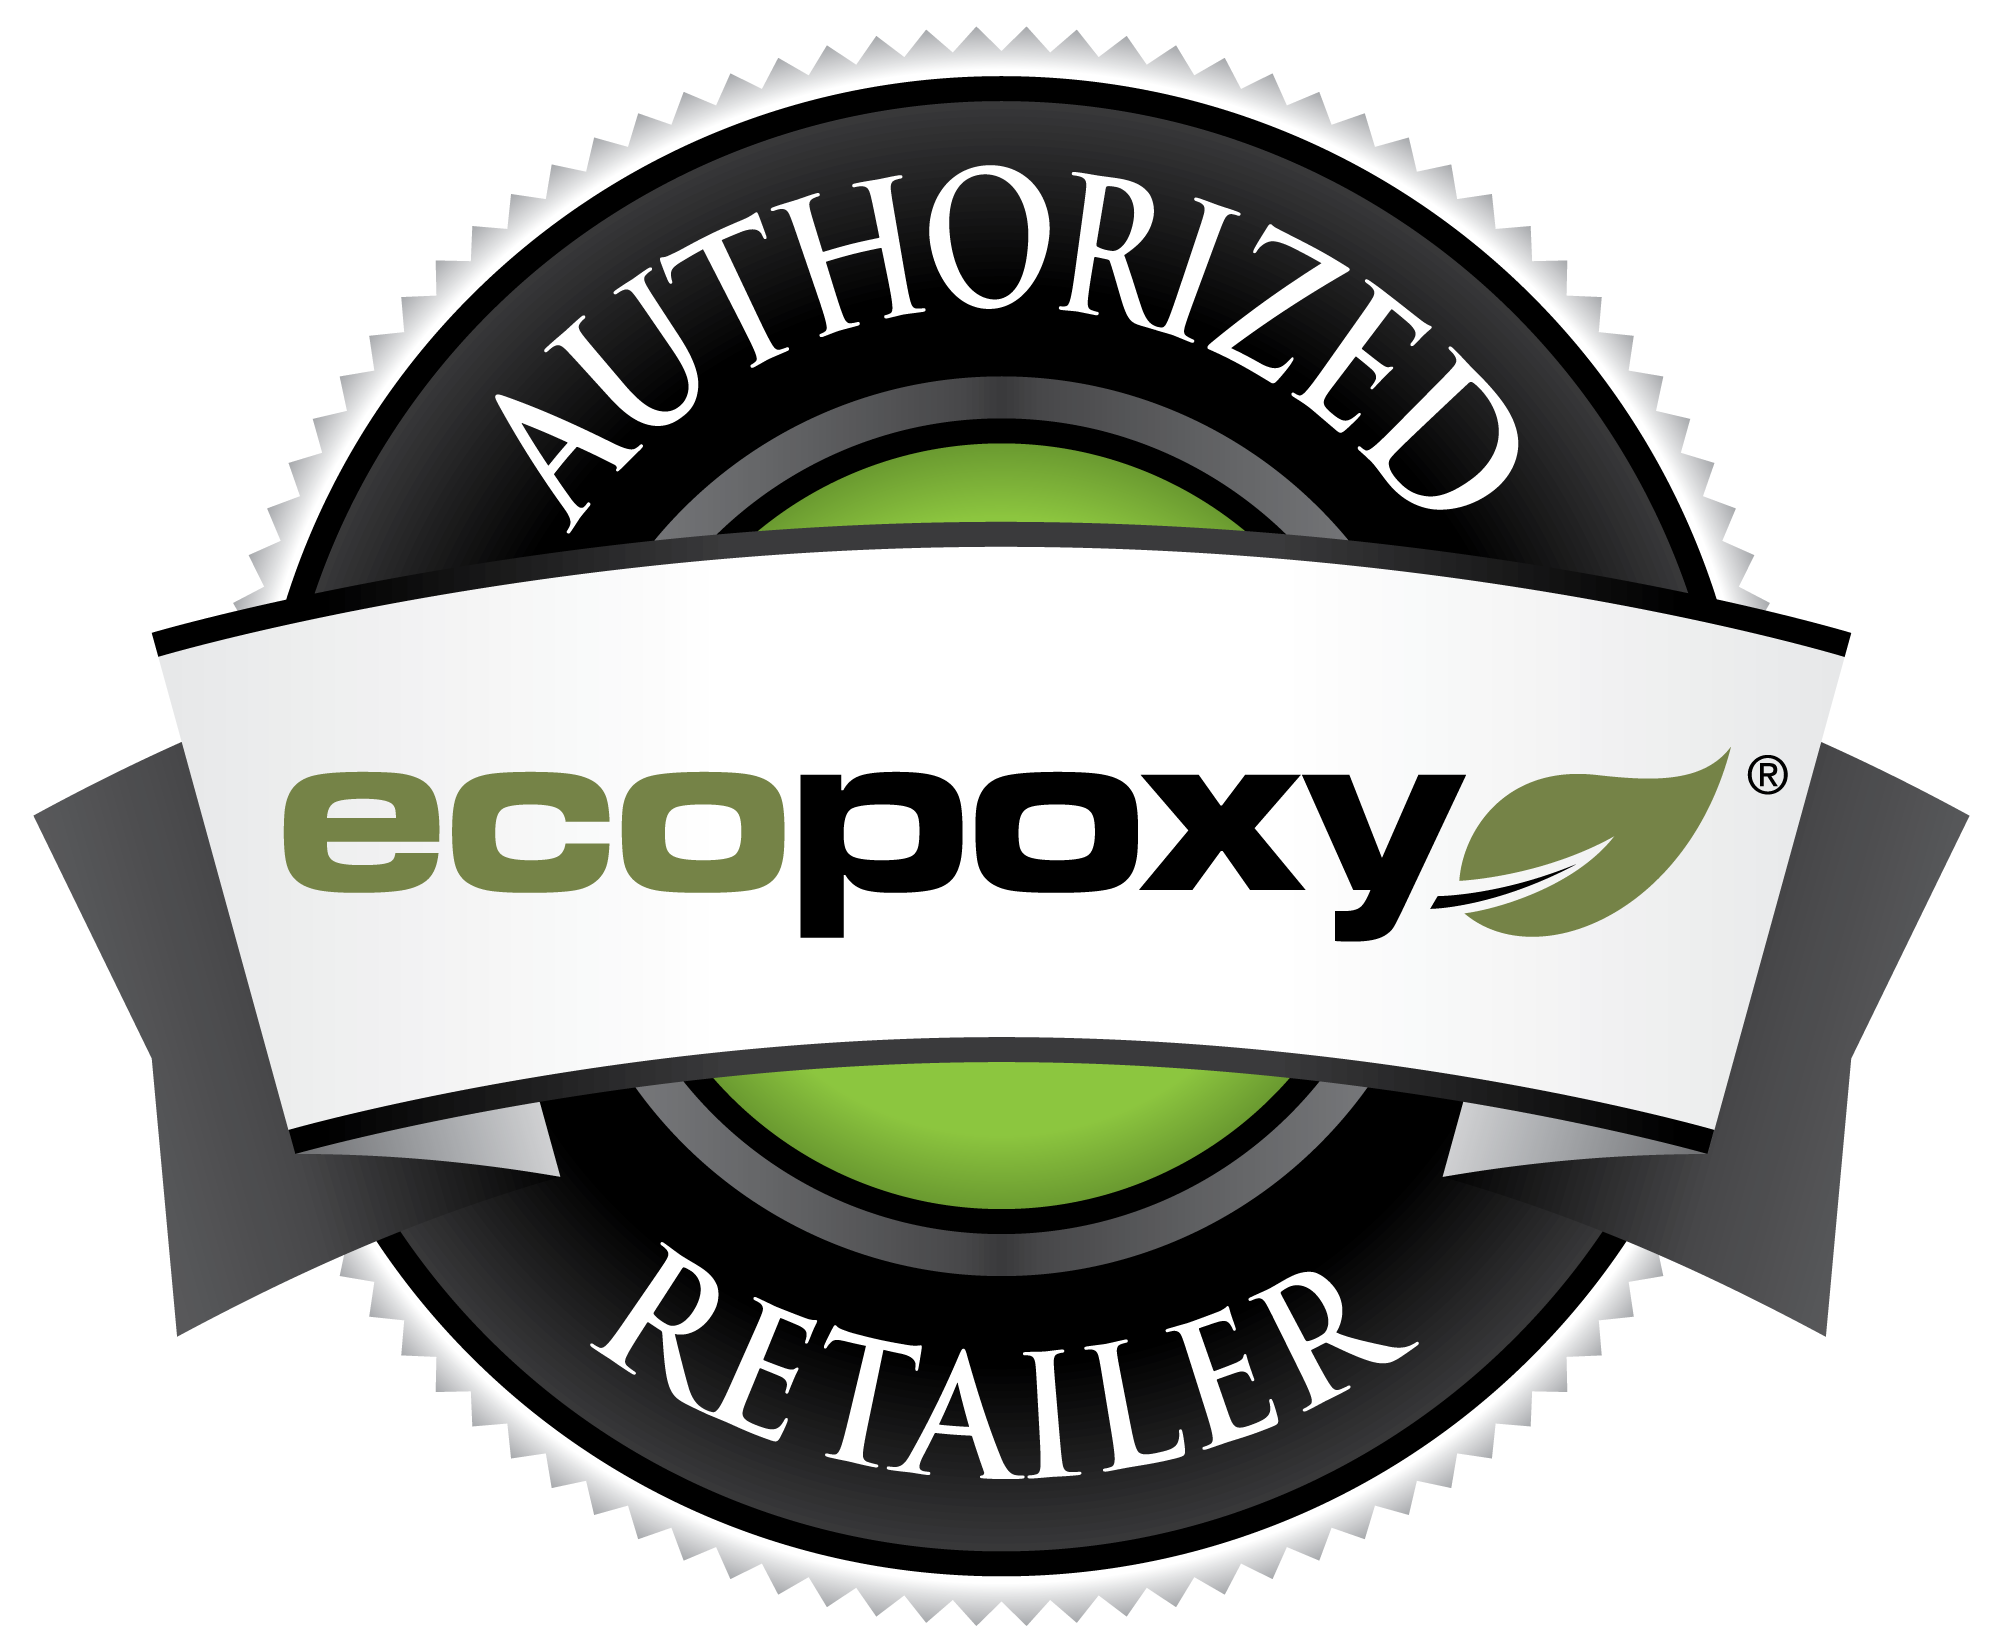 ecopoxy-logo-authorized-retailer-2018.png